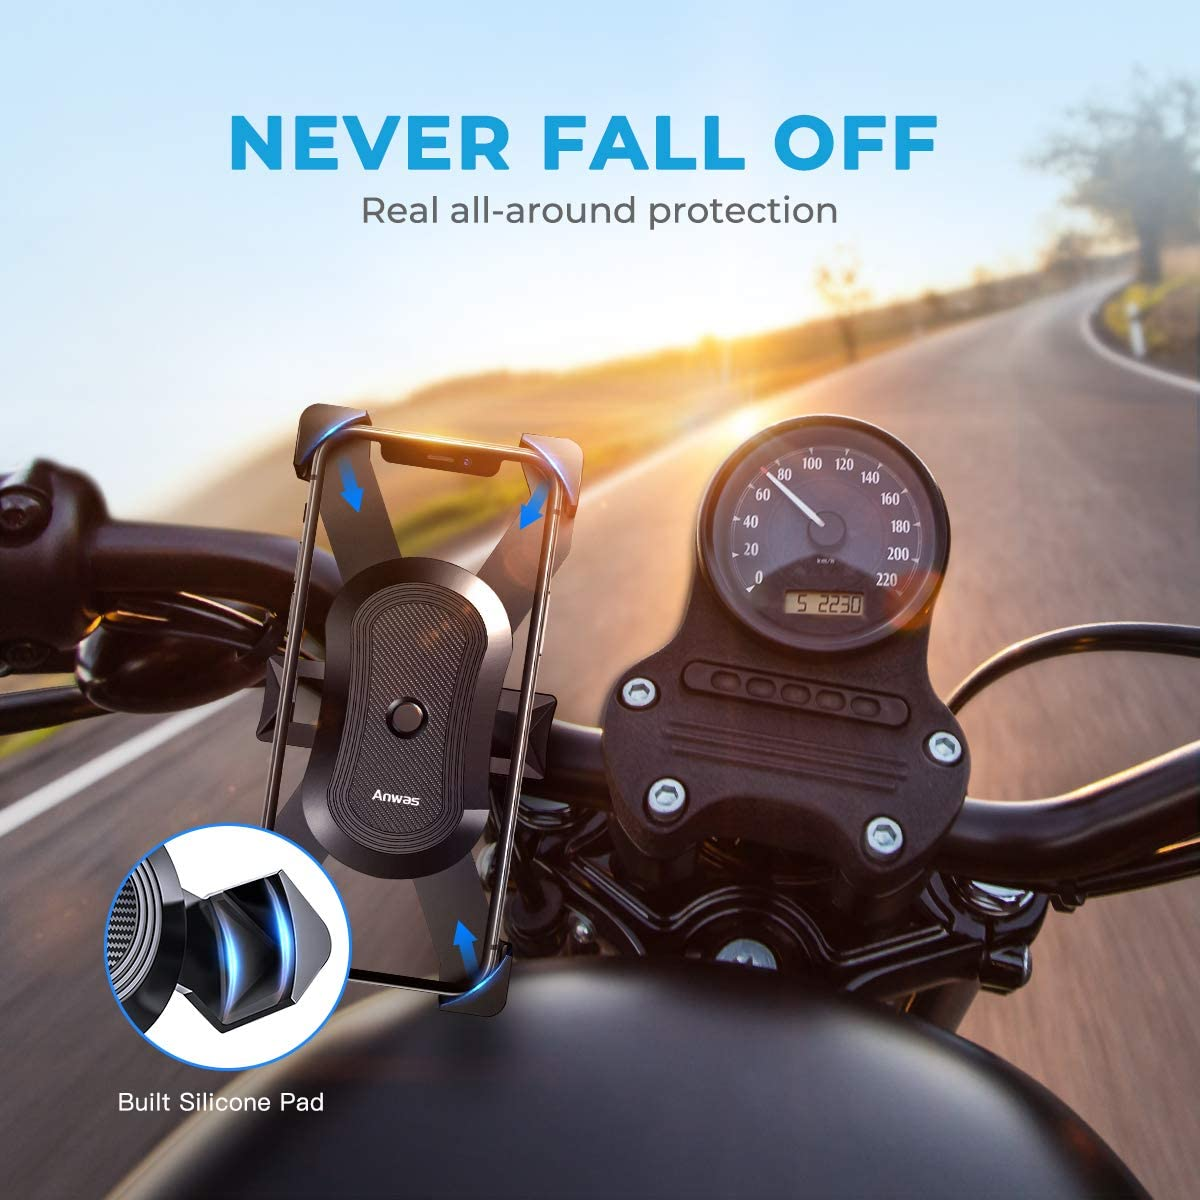 Anwas Bike Phone Mount【2020 Mechanical Safety Locking System】 Phone Mount for Bike Fit for iPhone 12 Pro Max 12 Mini 11 Pro Max XR X and All Android Phone Anti-Shake 360/° Rotation Bike Phone Holder